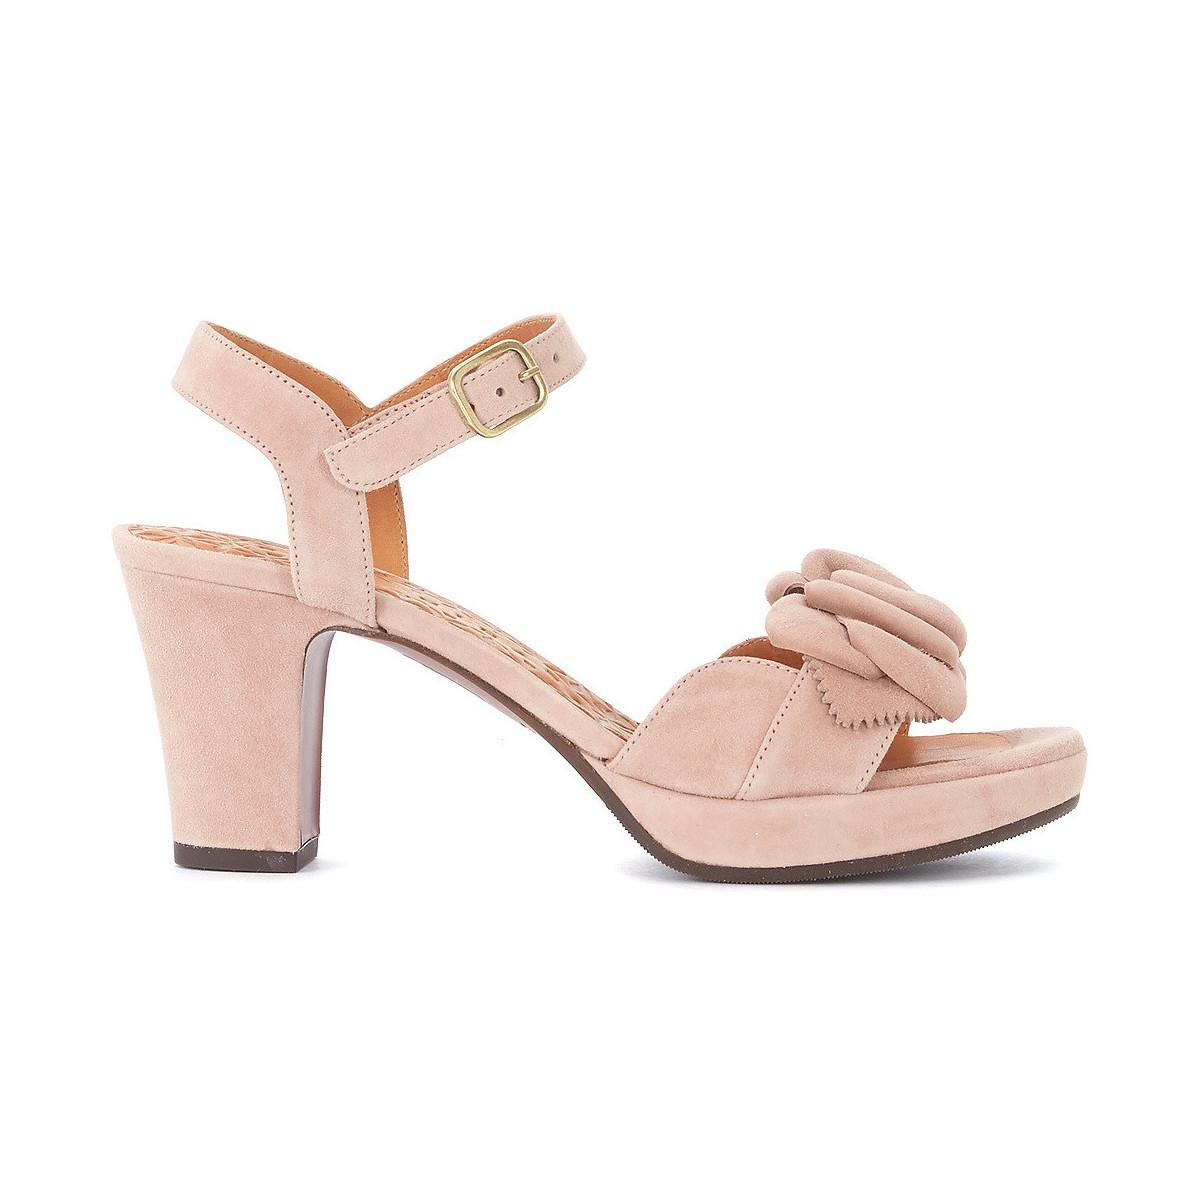 Inexpensive Sale Online Chie Mihara Blossom nude suede heeled sandal with flower women's Sandals in Recommend Cheap Online Extremely Online 2018 Newest Sale Online ZwfbKKxcq